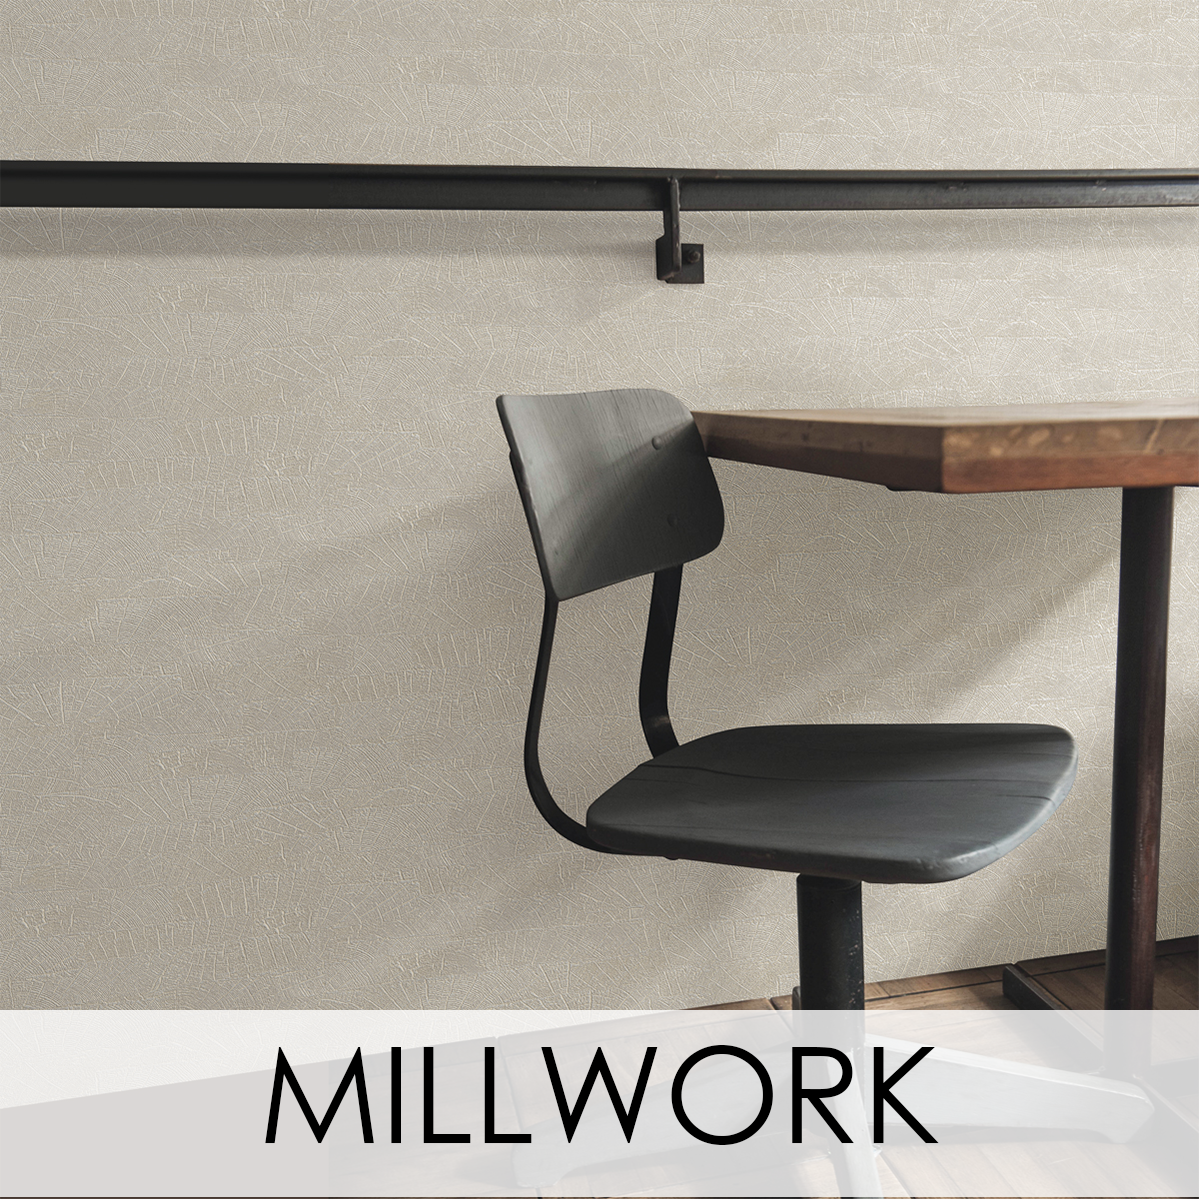 Millwork Wallcovering from LEVEY